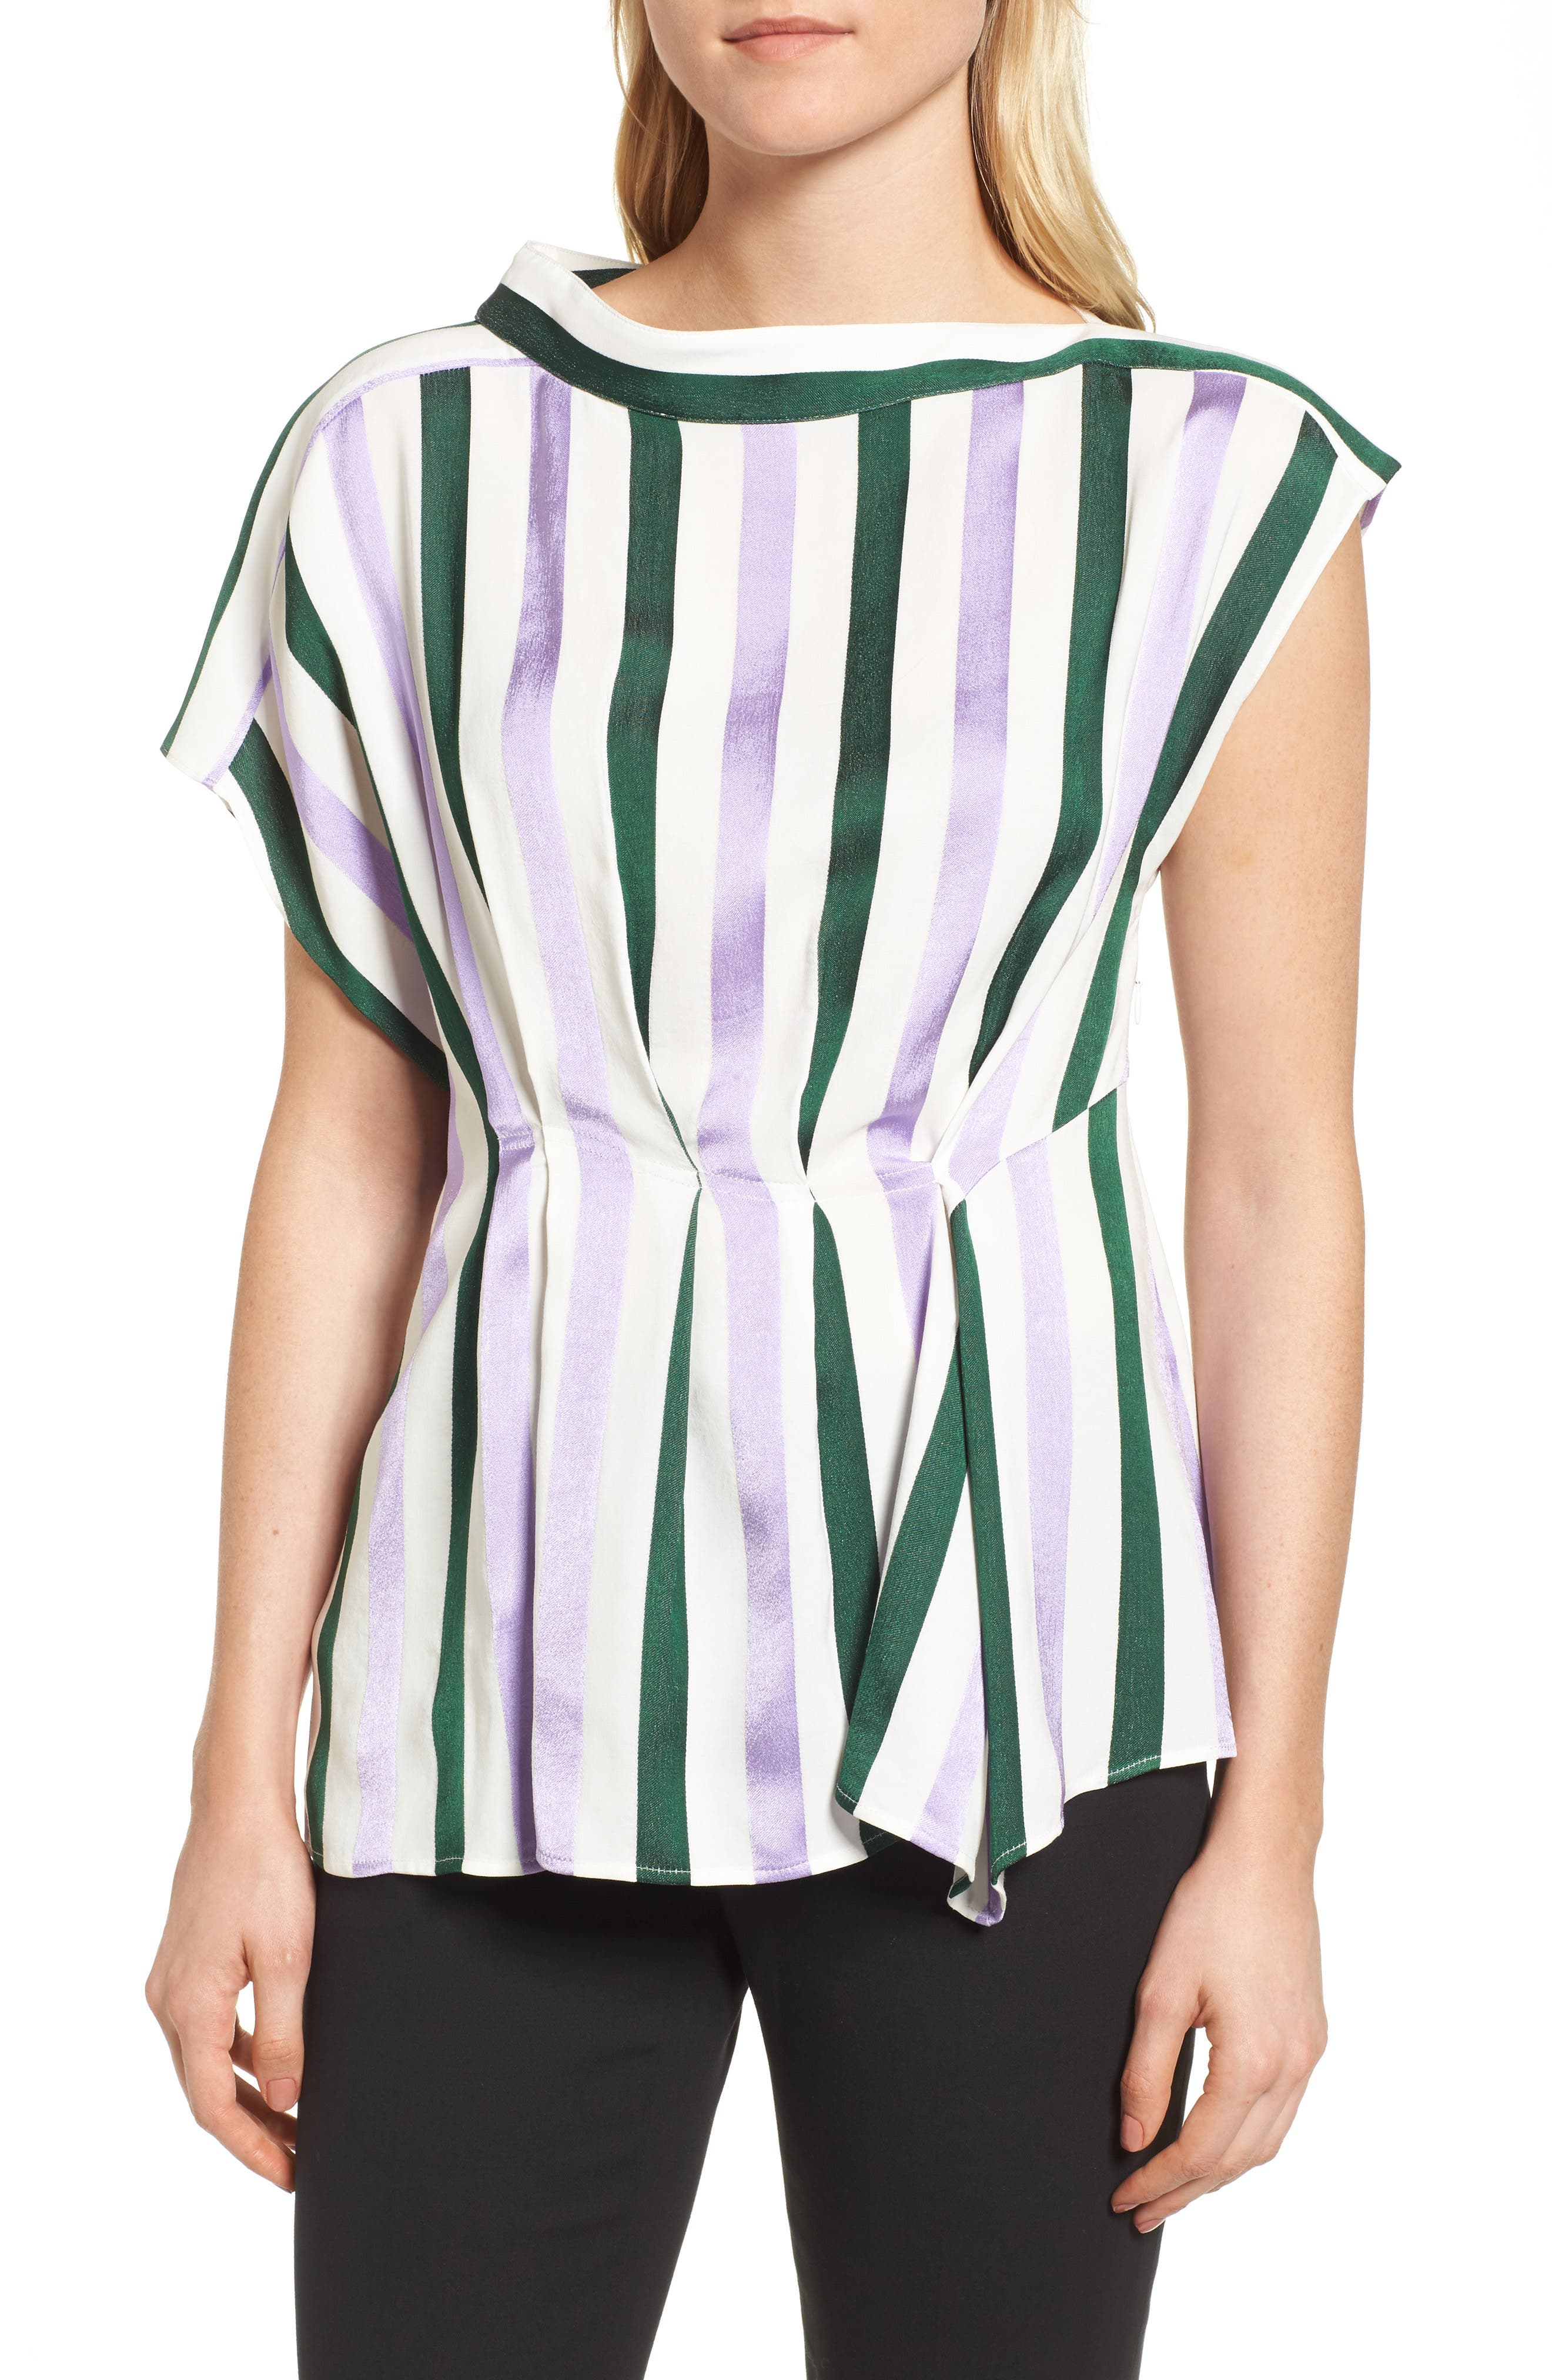 Alternate Image 1 Selected - Lewit Stripe Draped Peplum Top